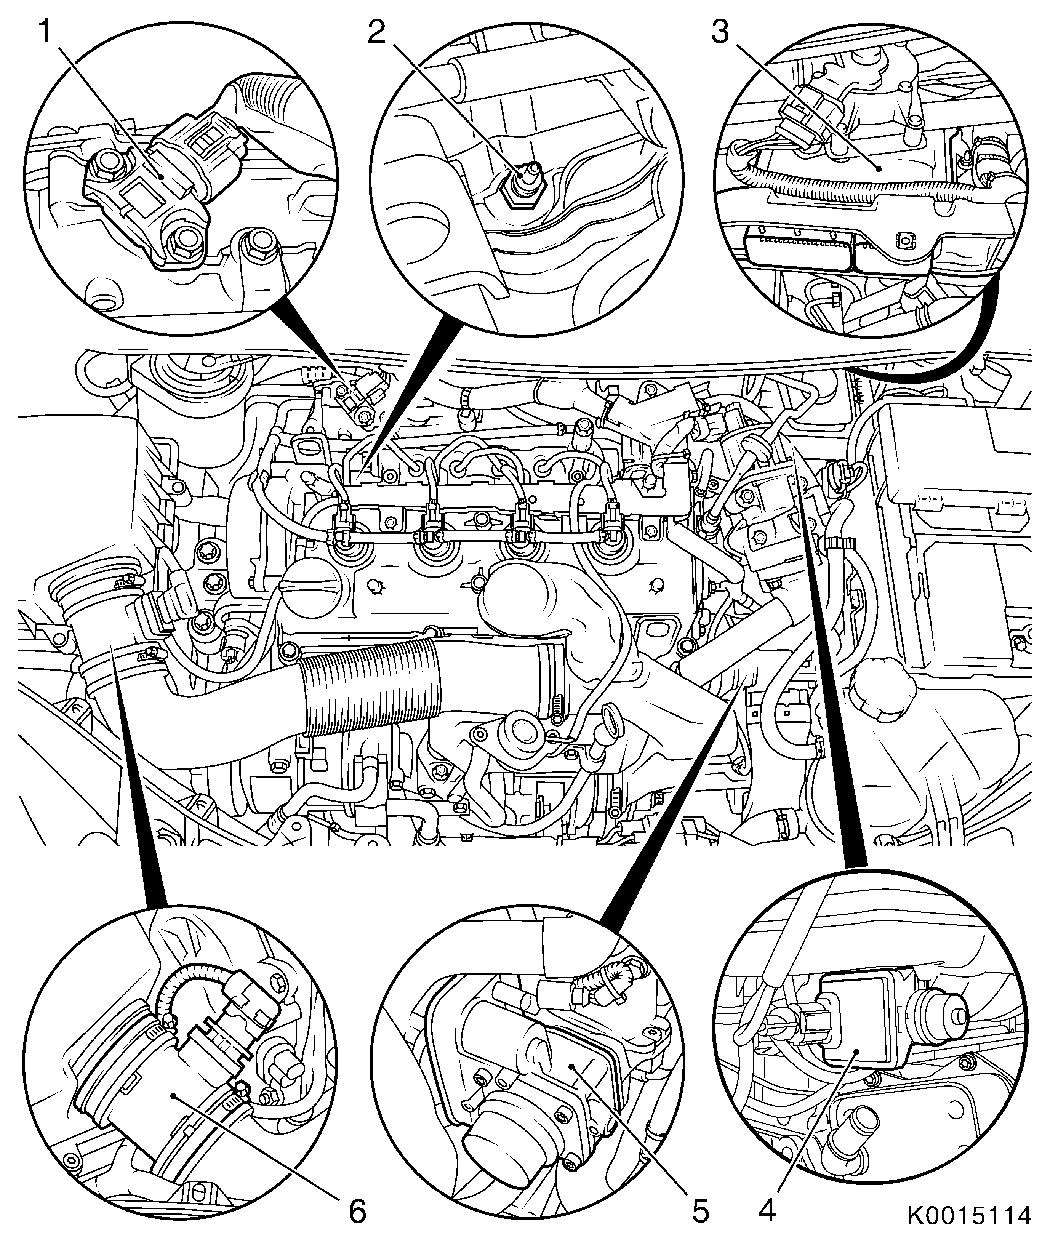 Vauxhall workshop manuals corsa d j engine and engine